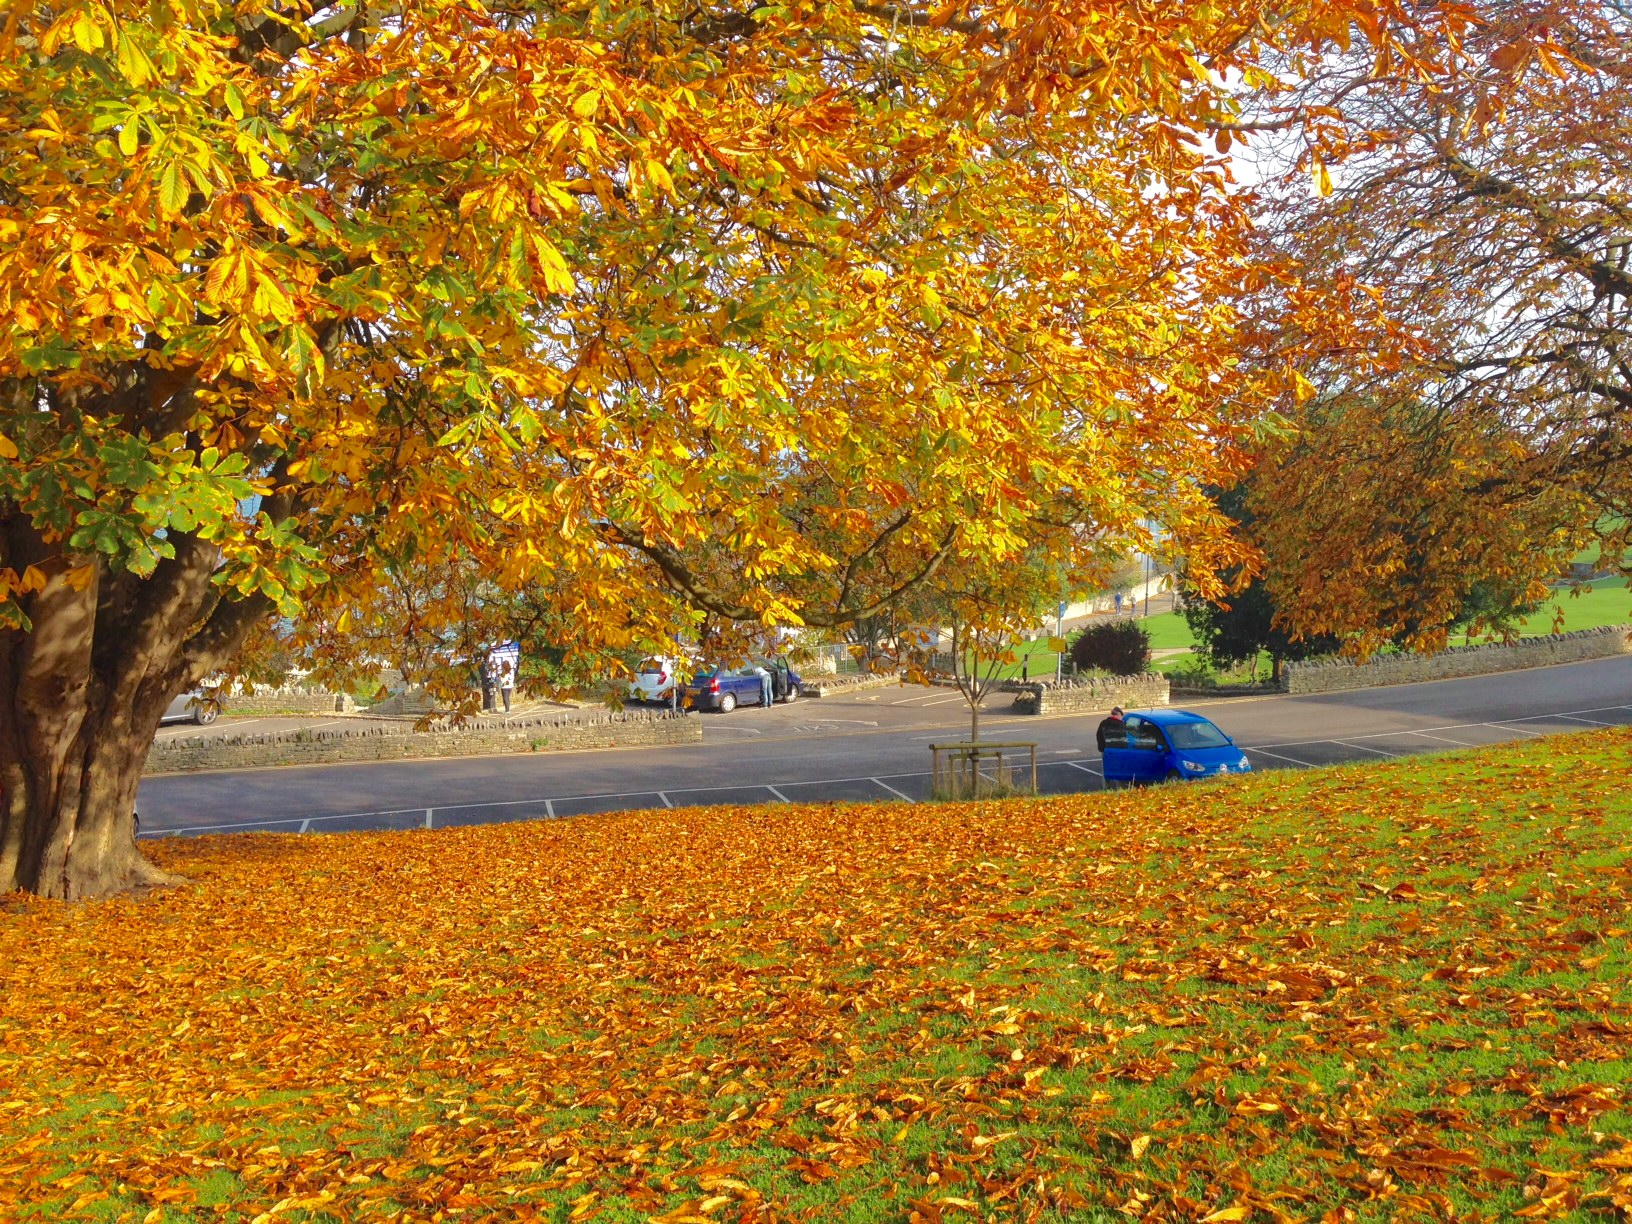 Autumn leaves back home in Swanage.